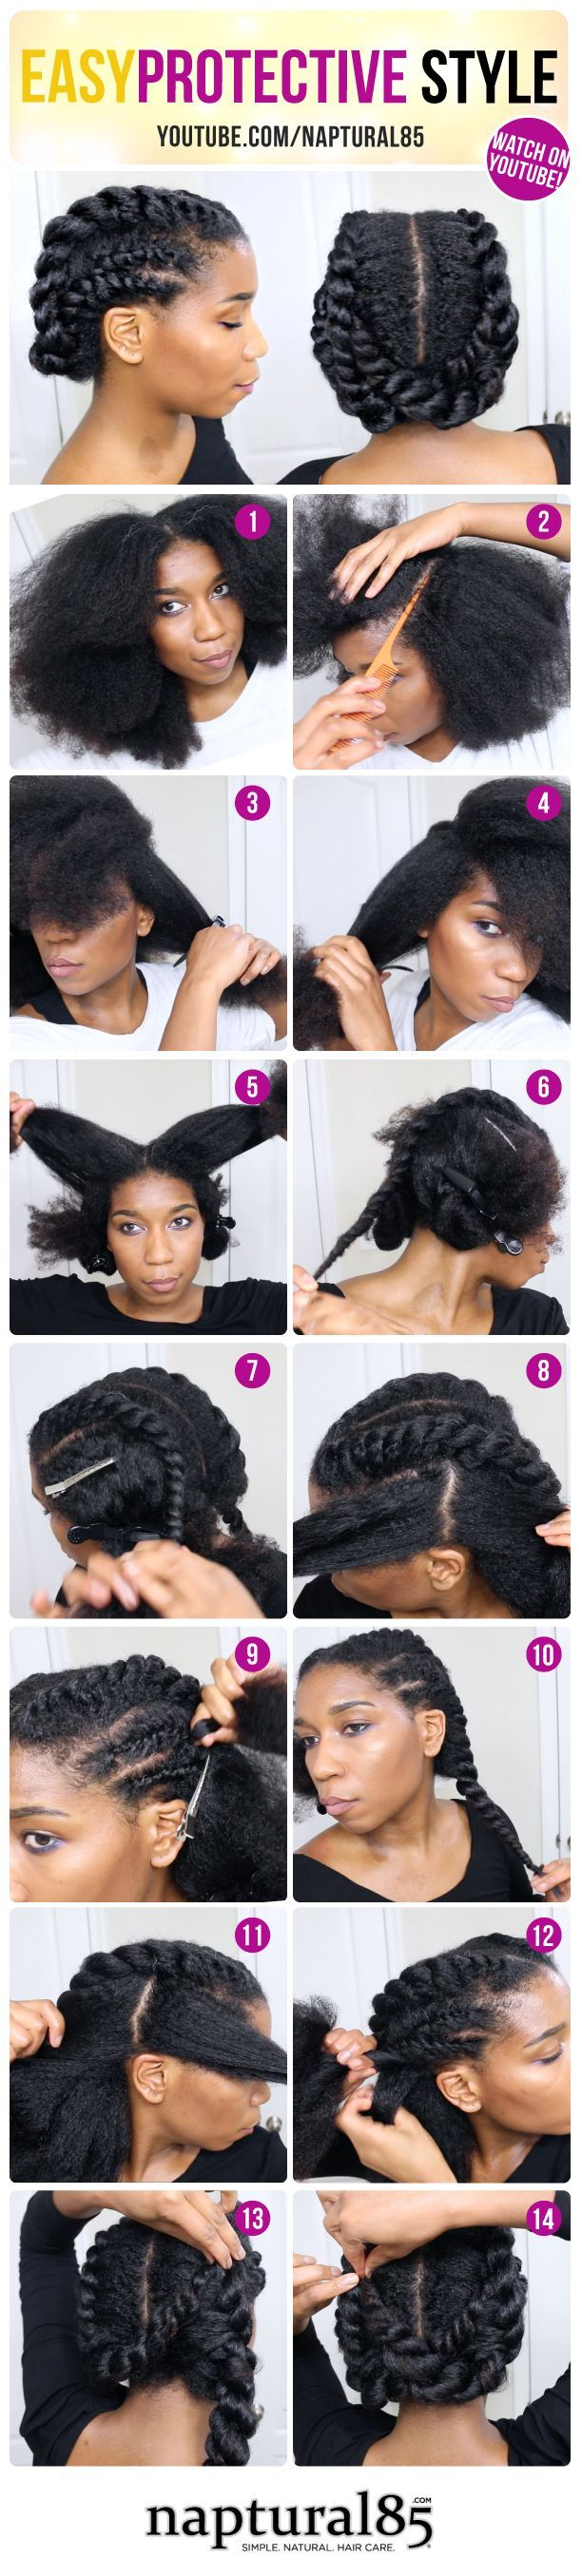 Naptural85 - Trying this hairstyle ASAP ManeGuru.com  Natural Hairstyles: Bantu Knots, Afros, Twist outs, Protective Styles   Visit ManeGuru.com for more!